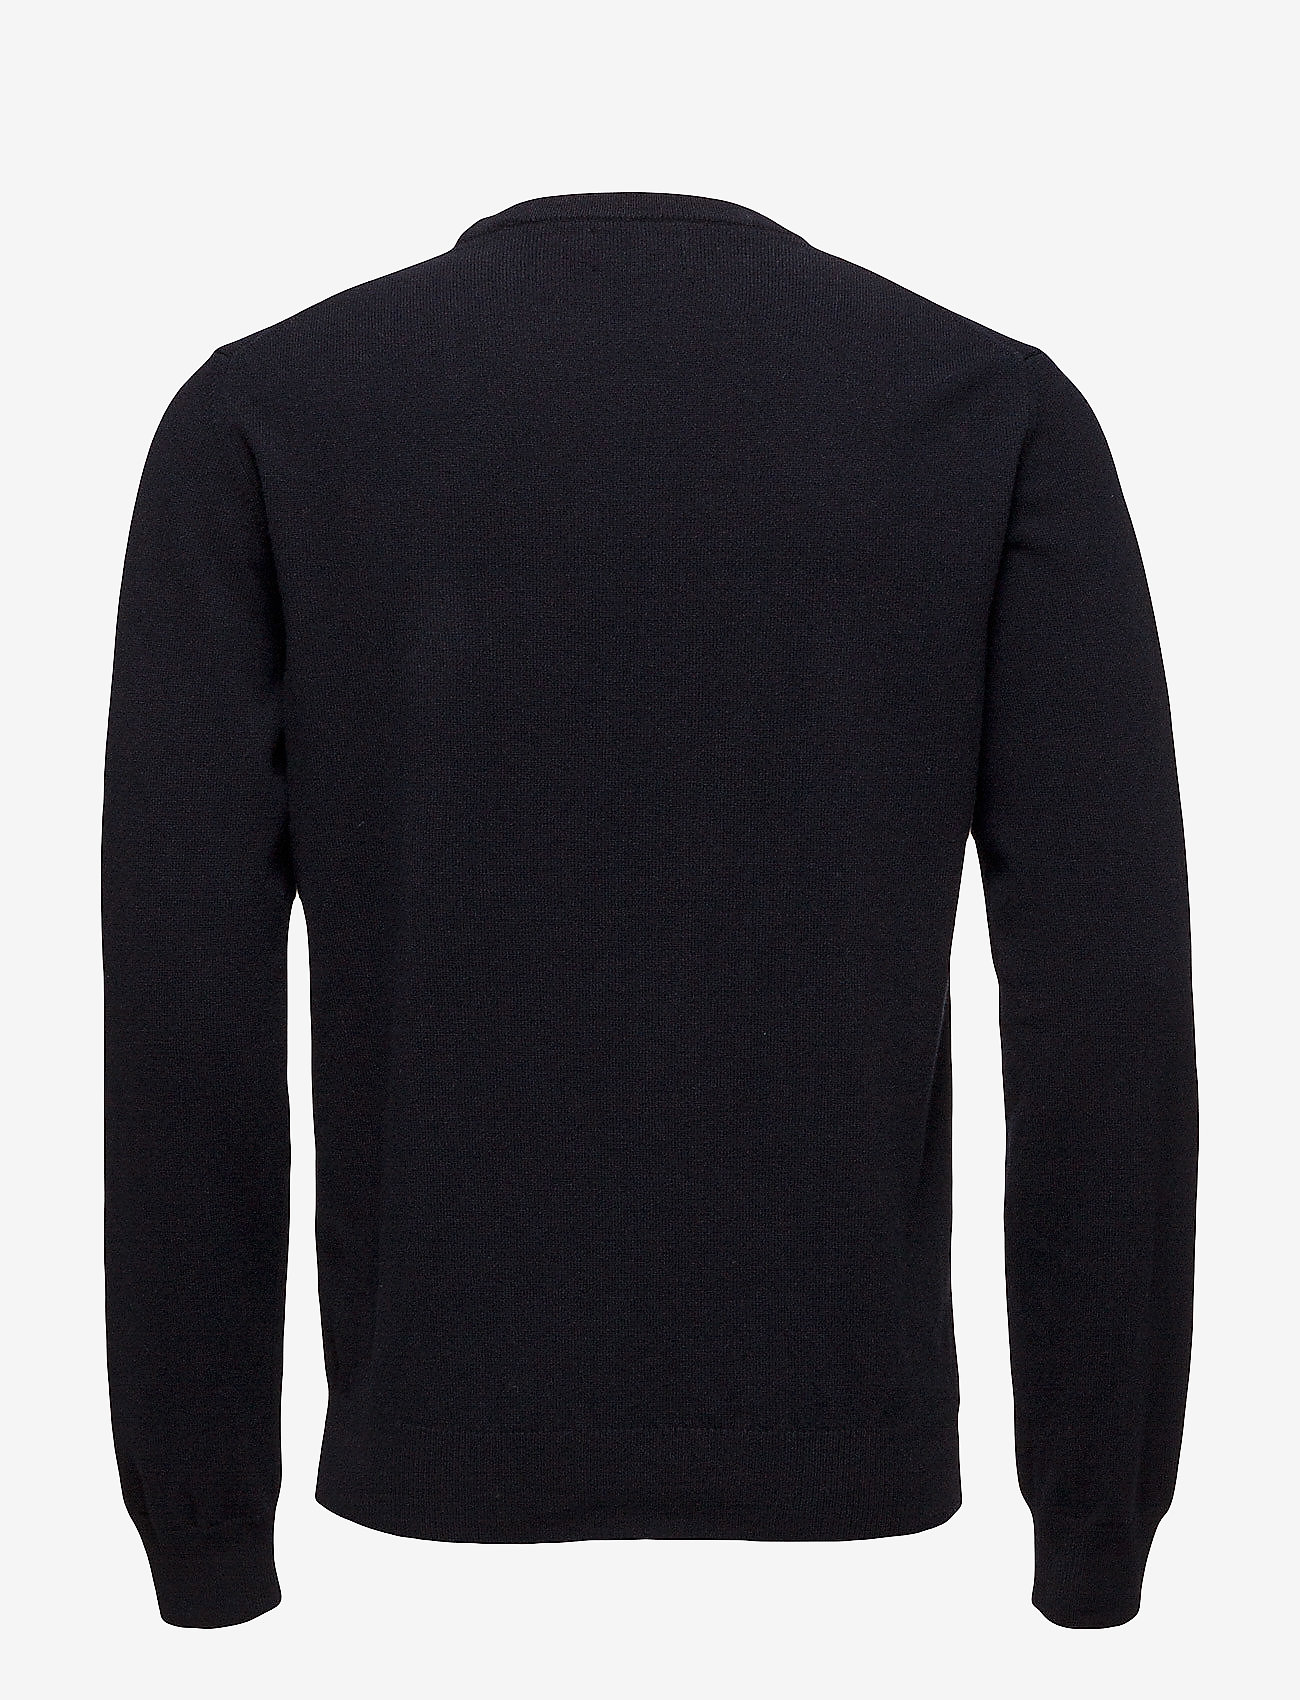 GANT - SUPERFINE LAMBSWOOL CREW - basic knitwear - marine - 1